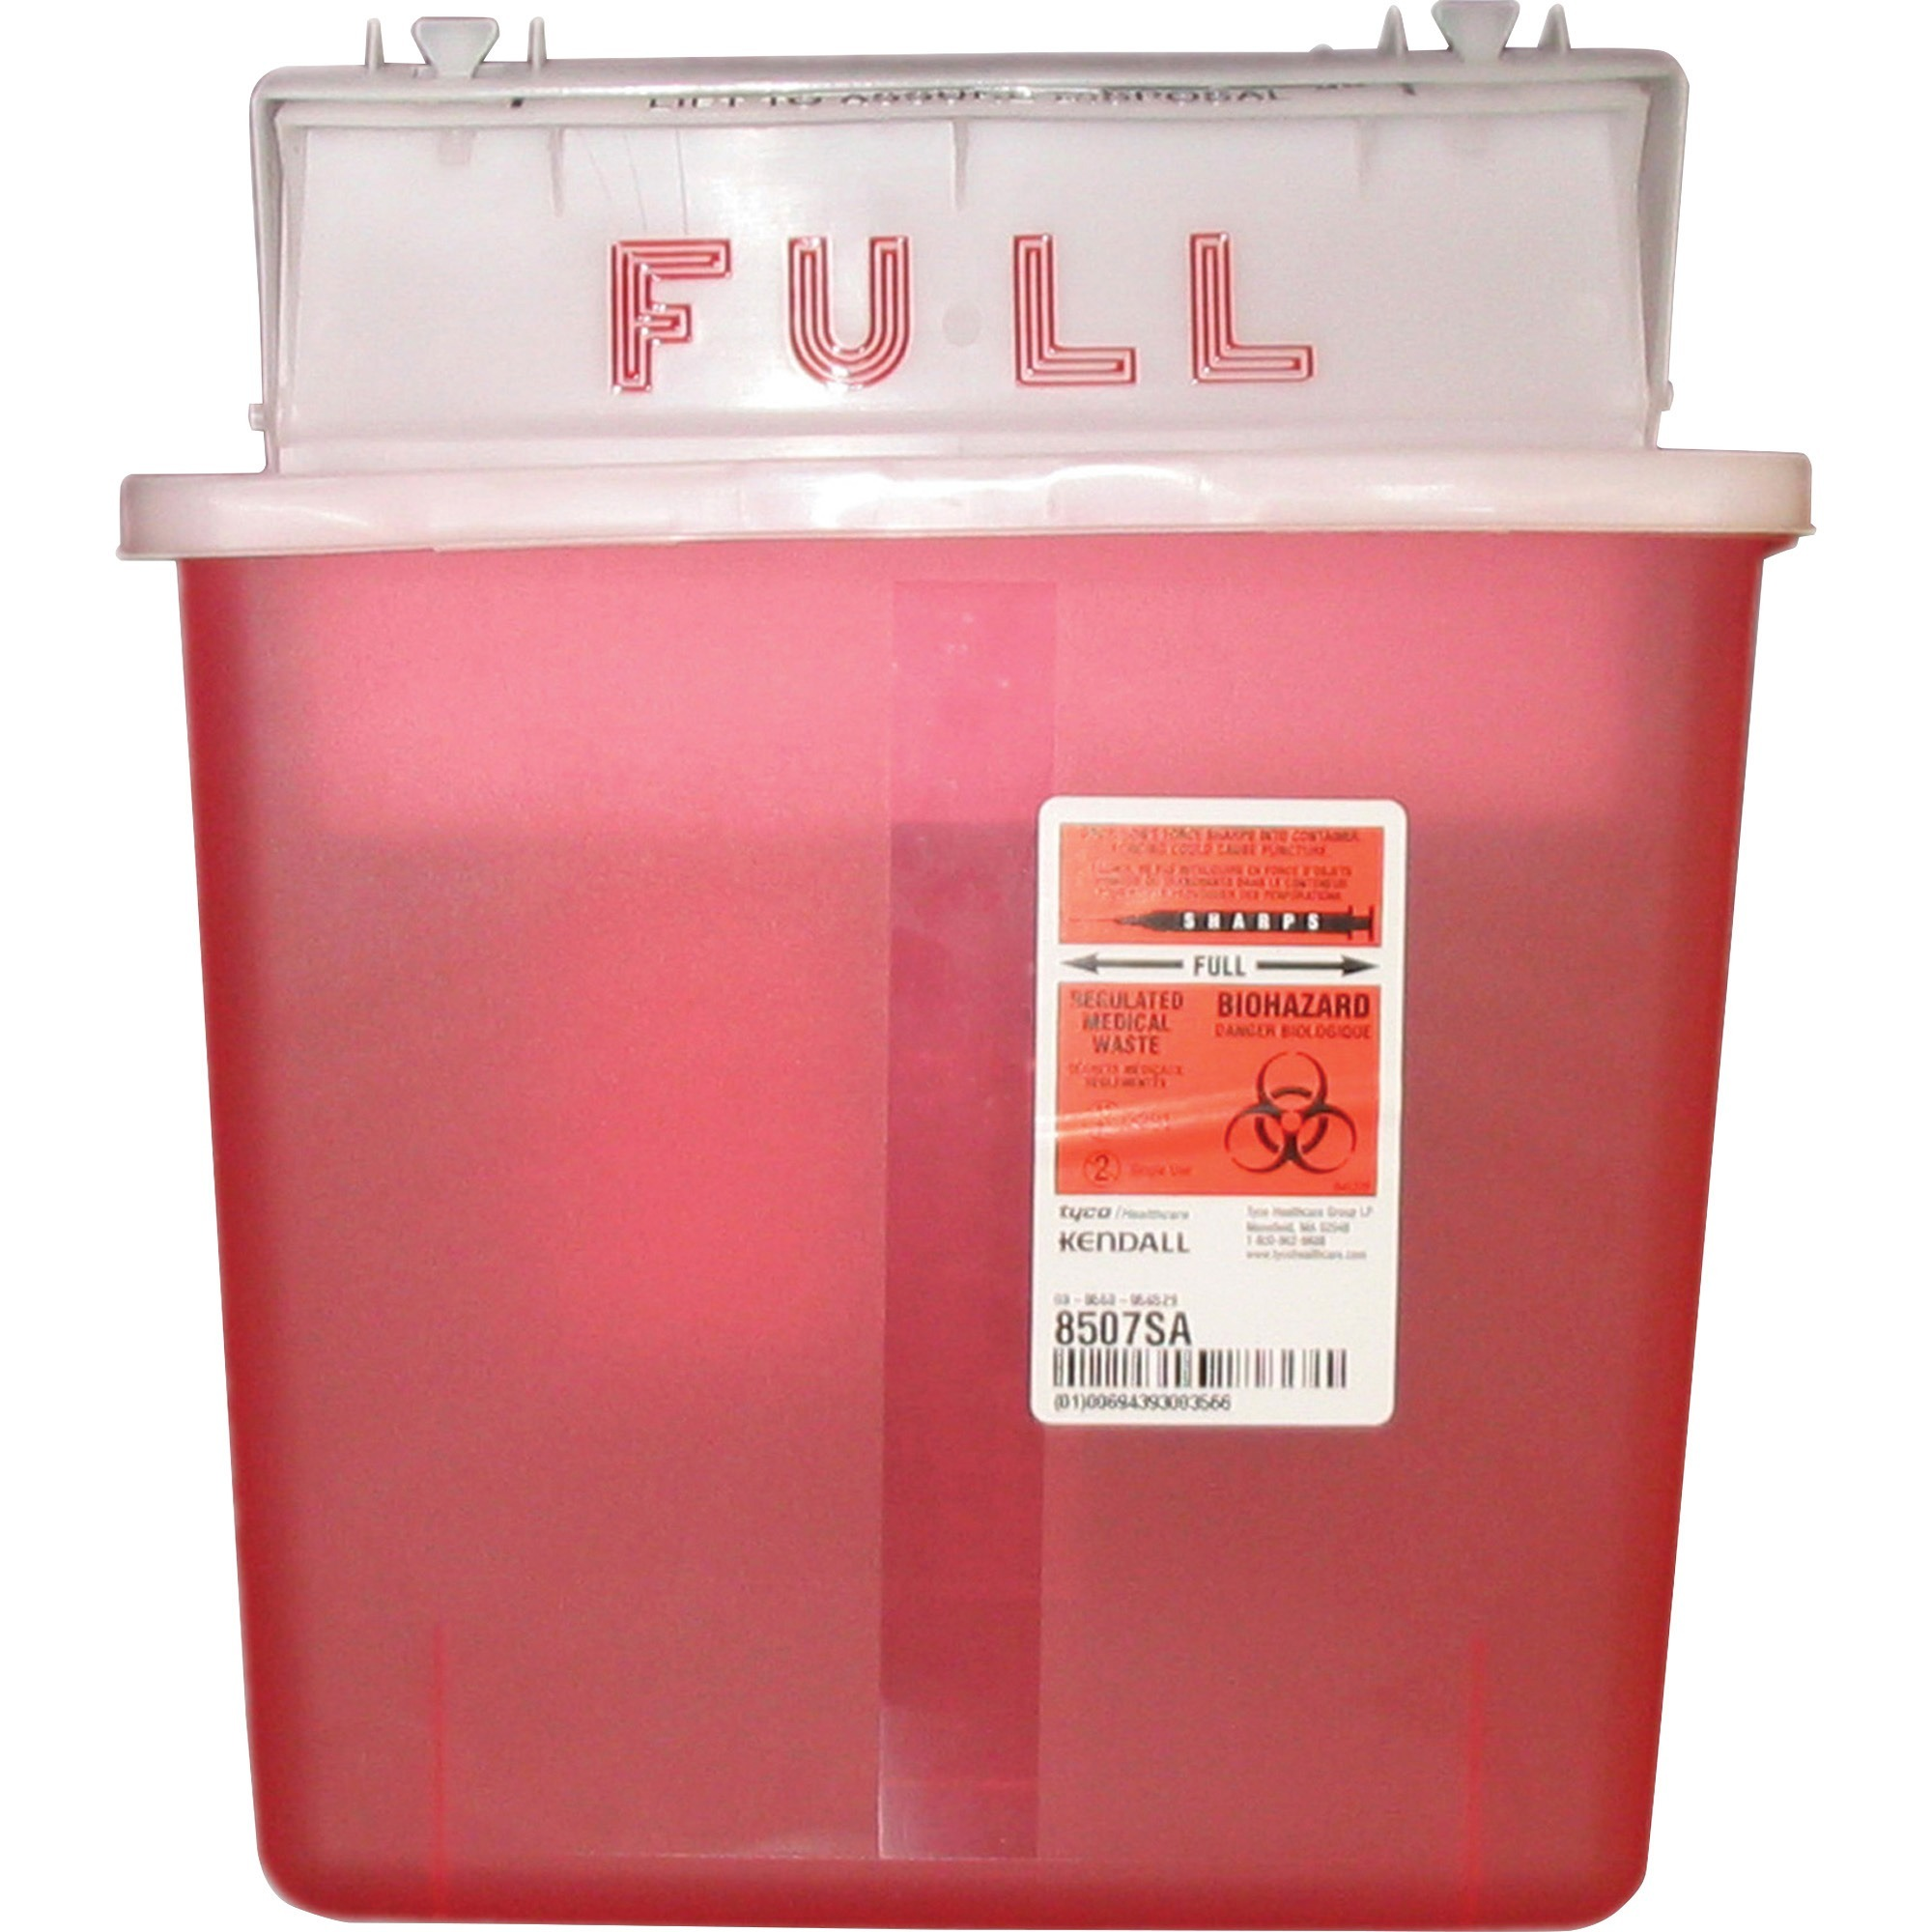 Covidien Sharpstar 5 Quart Sharps Container with Lid - 1 25 gal